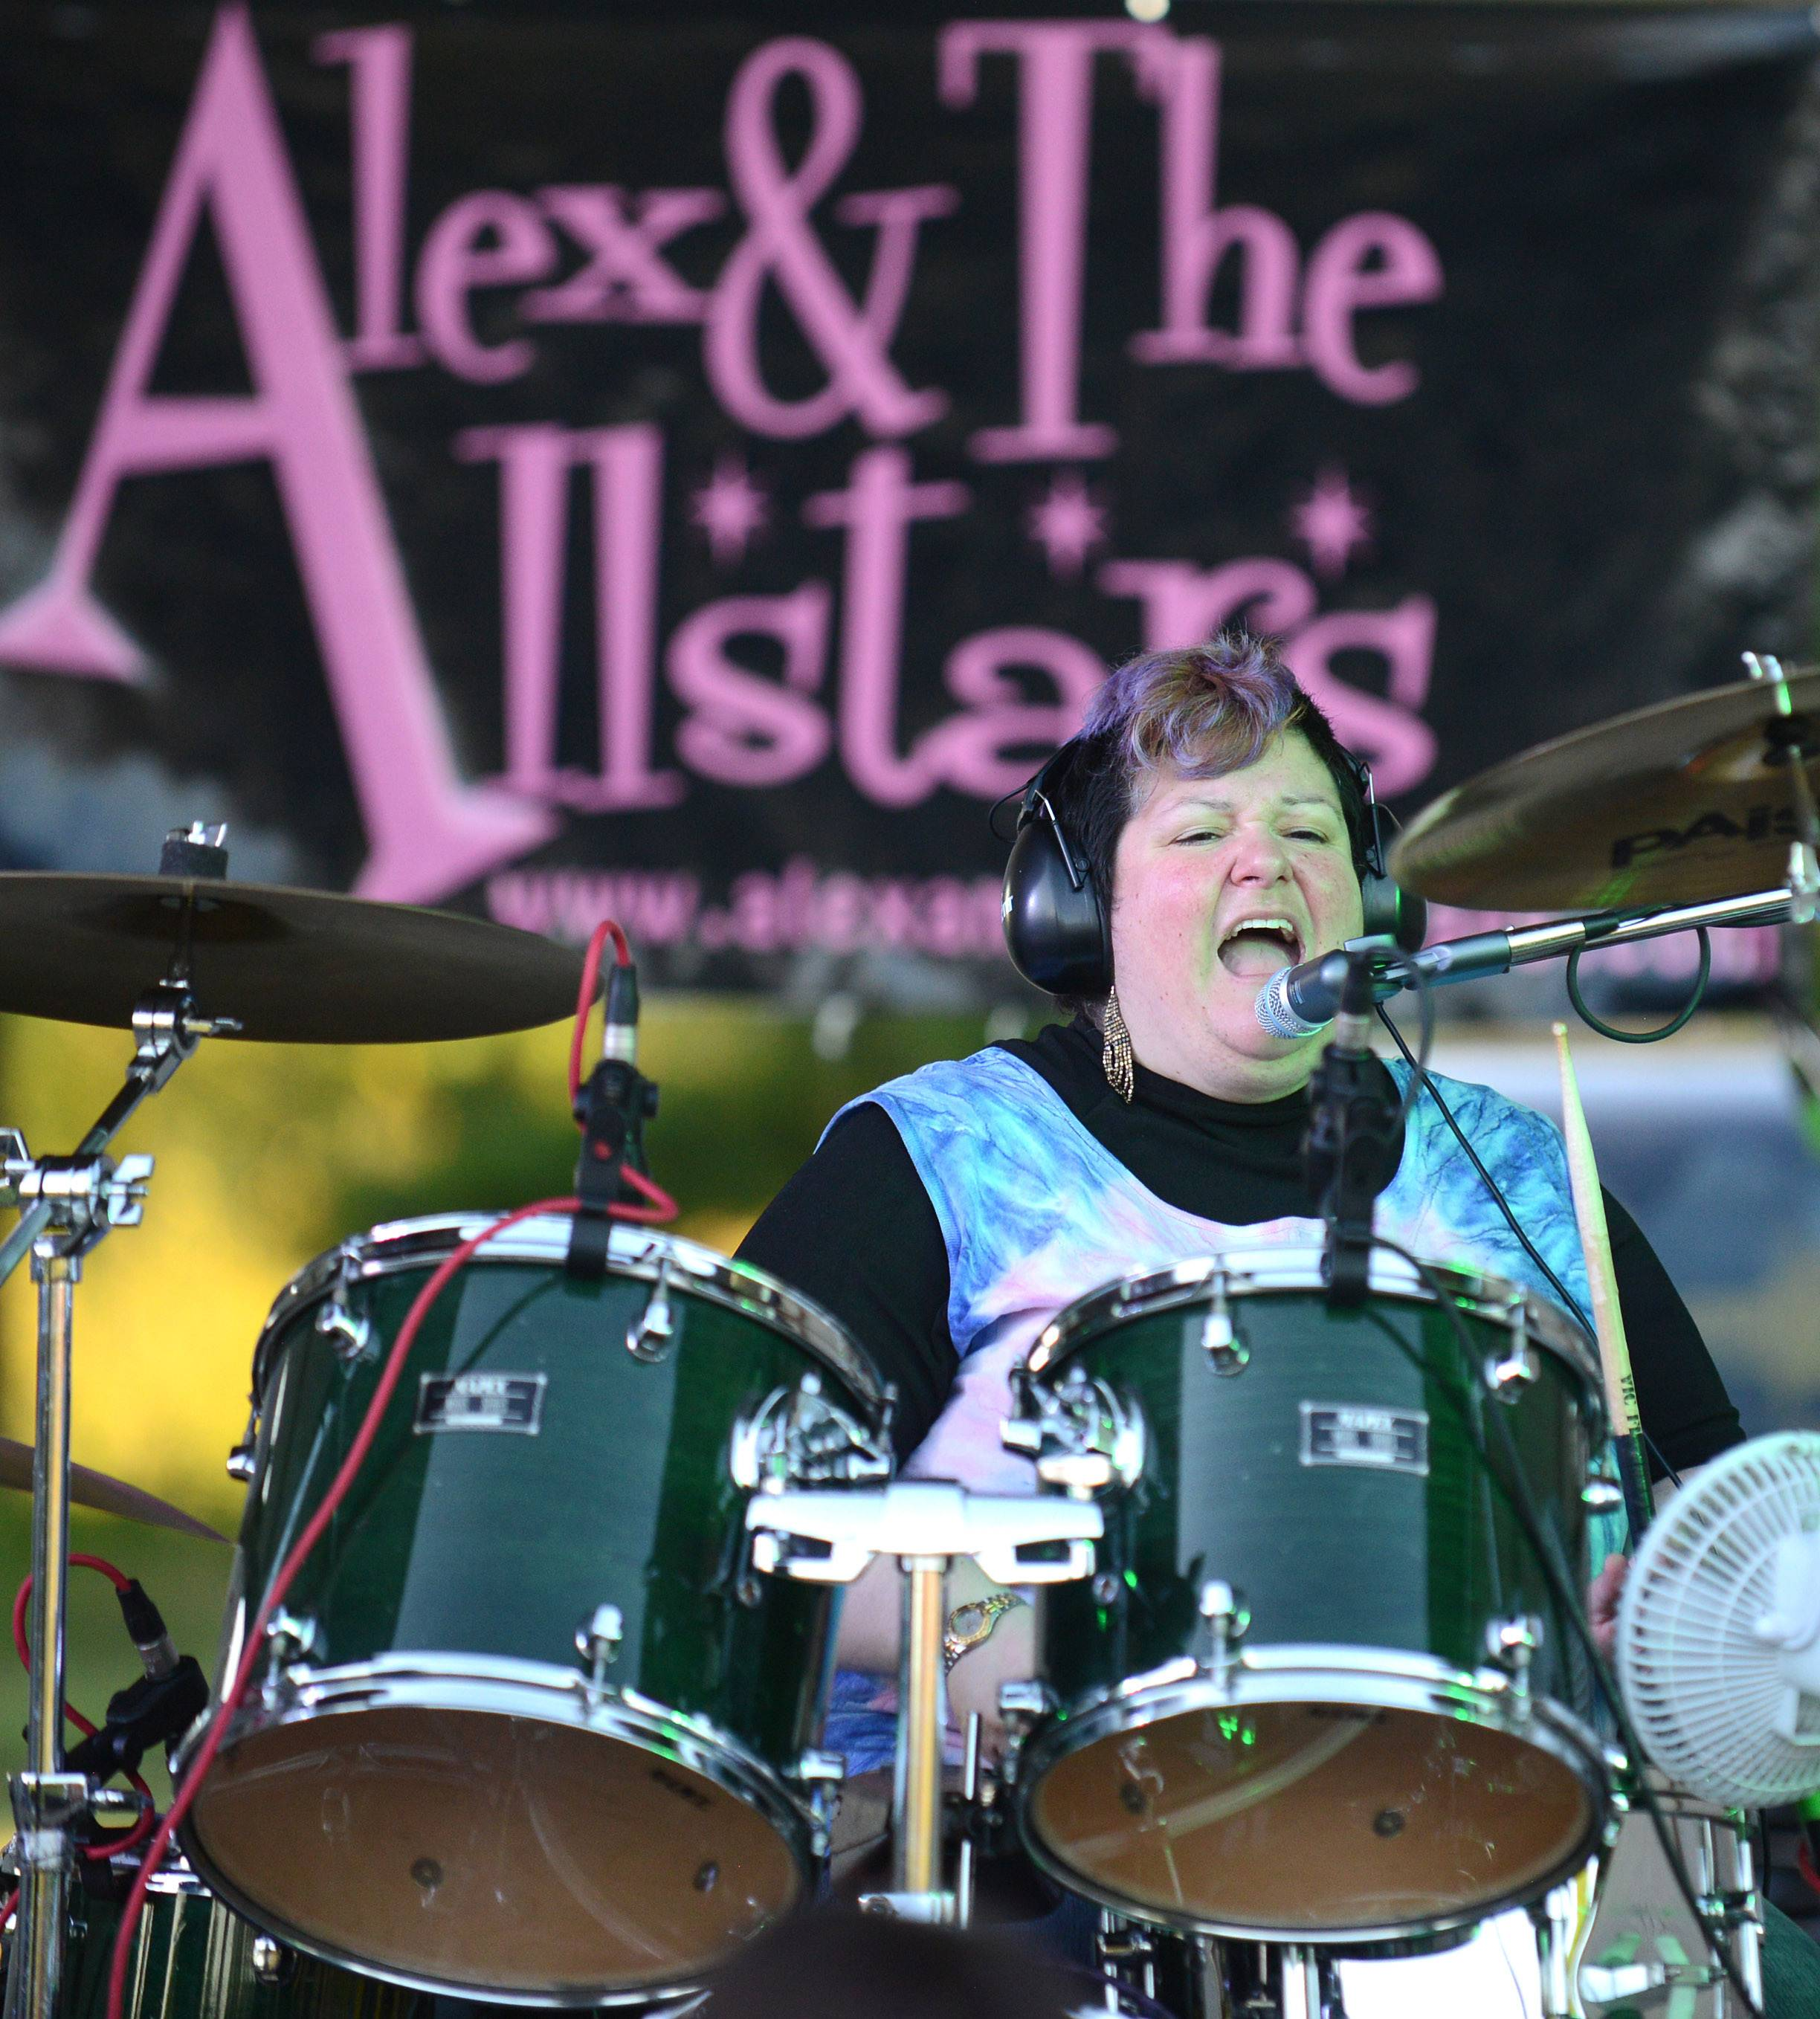 Alex Stanco of Fox River Grove is on lead vocals and drums for the Alex and The Allstars band while they play at the Cary Summer Celebration at Lions Park on Thursday, July 3. The band covers 70s and 80s music.